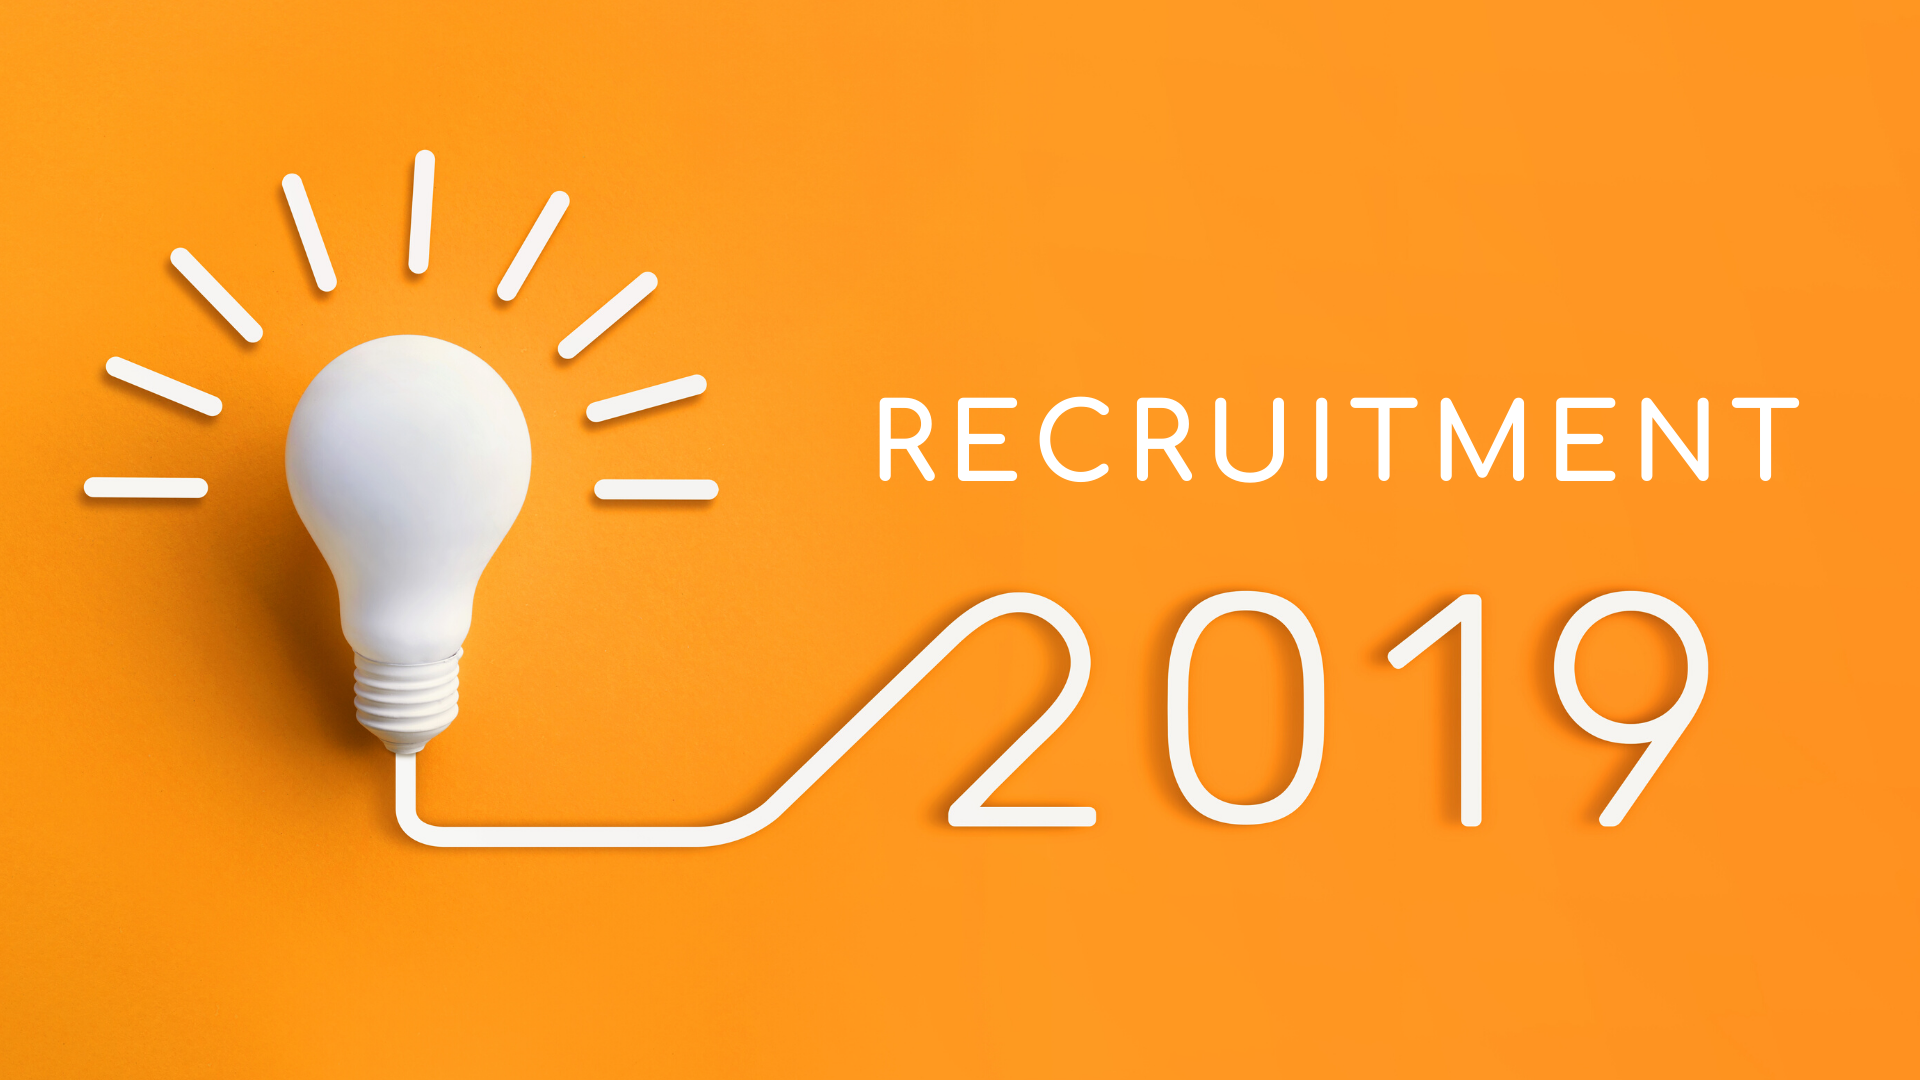 30 recruitment statistics you should be aware of in 2019